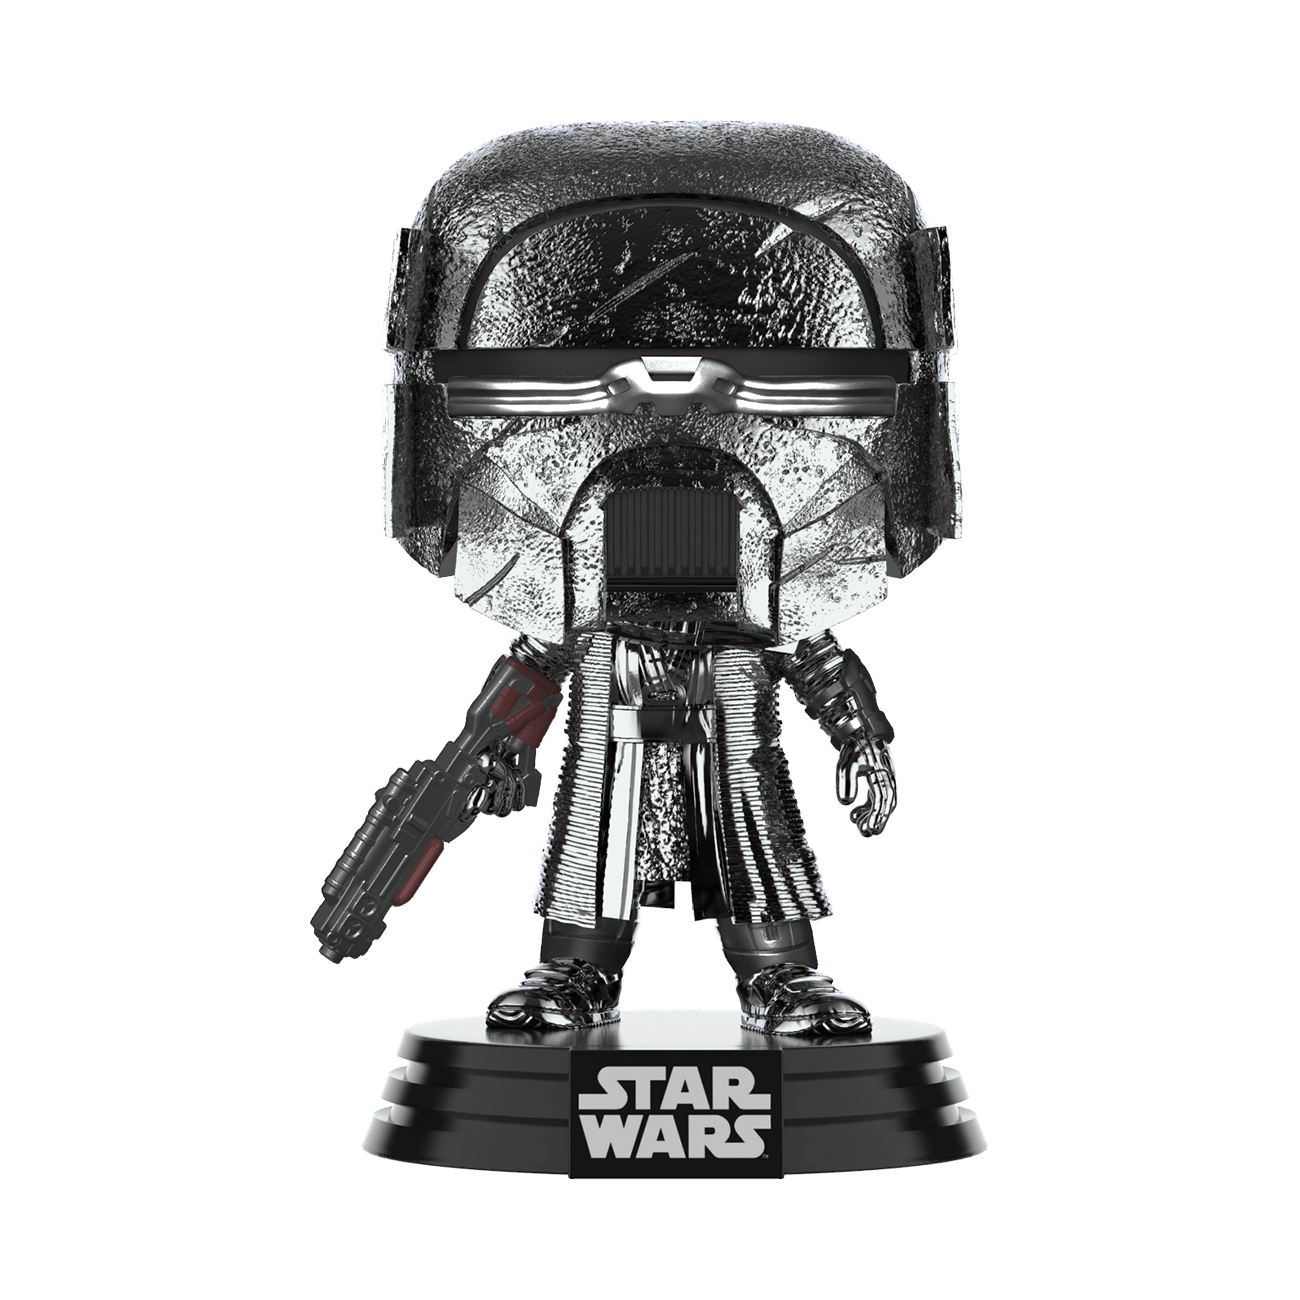 Star Wars: The Rise of Skywalker Hematite Chrome Knight of Ren Blaster Pop! Vinyl Figure